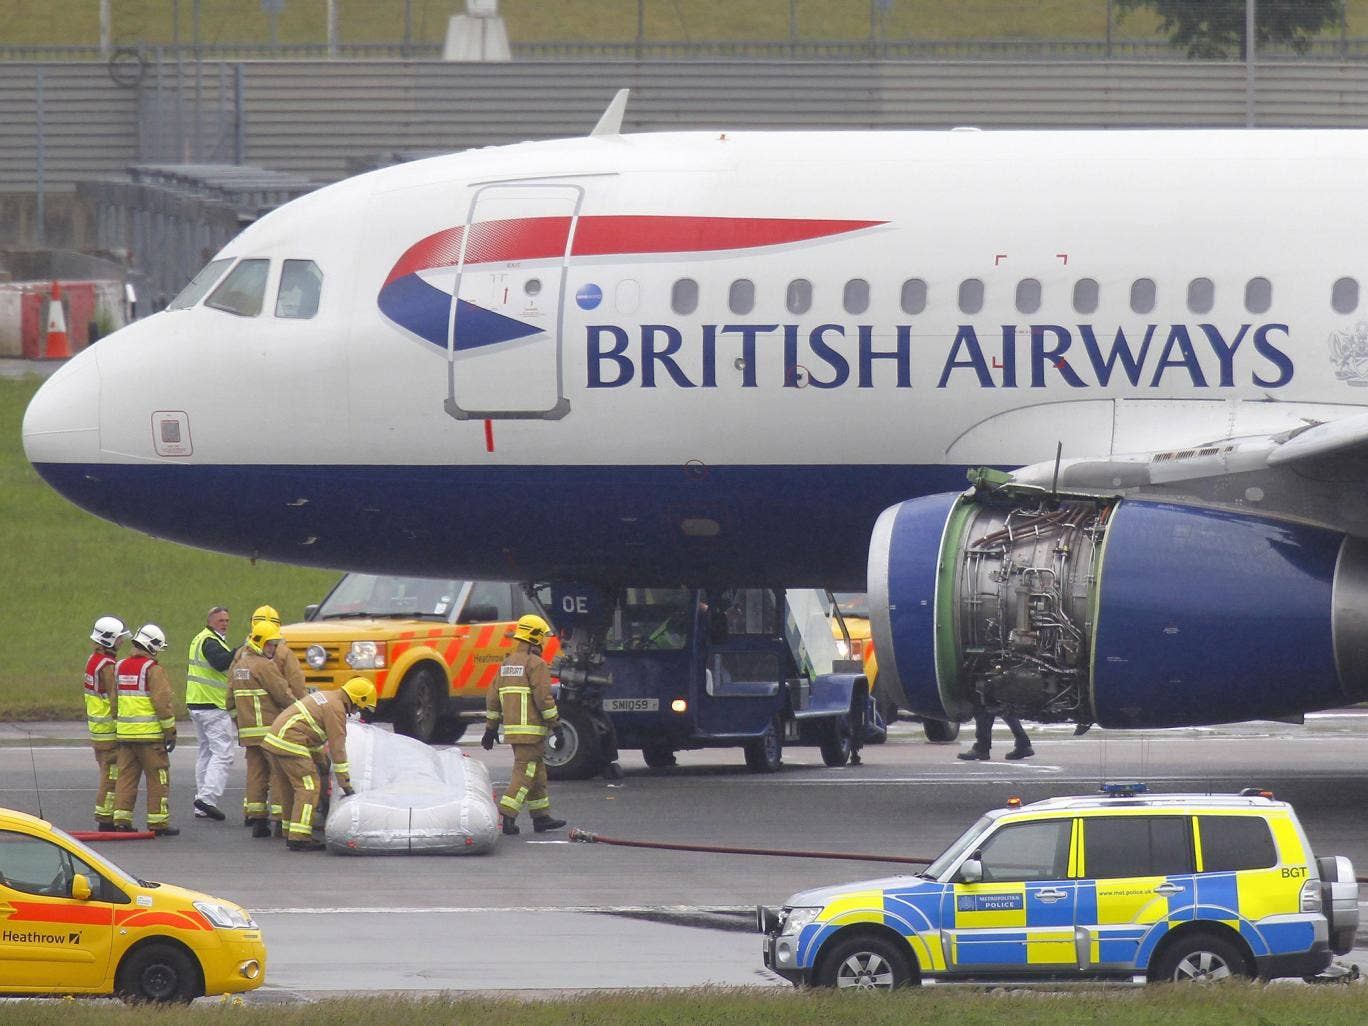 24 May 2013: Emergency services attend a British Airways passenger plane after it had to make an emergency landing at Heathrow airport